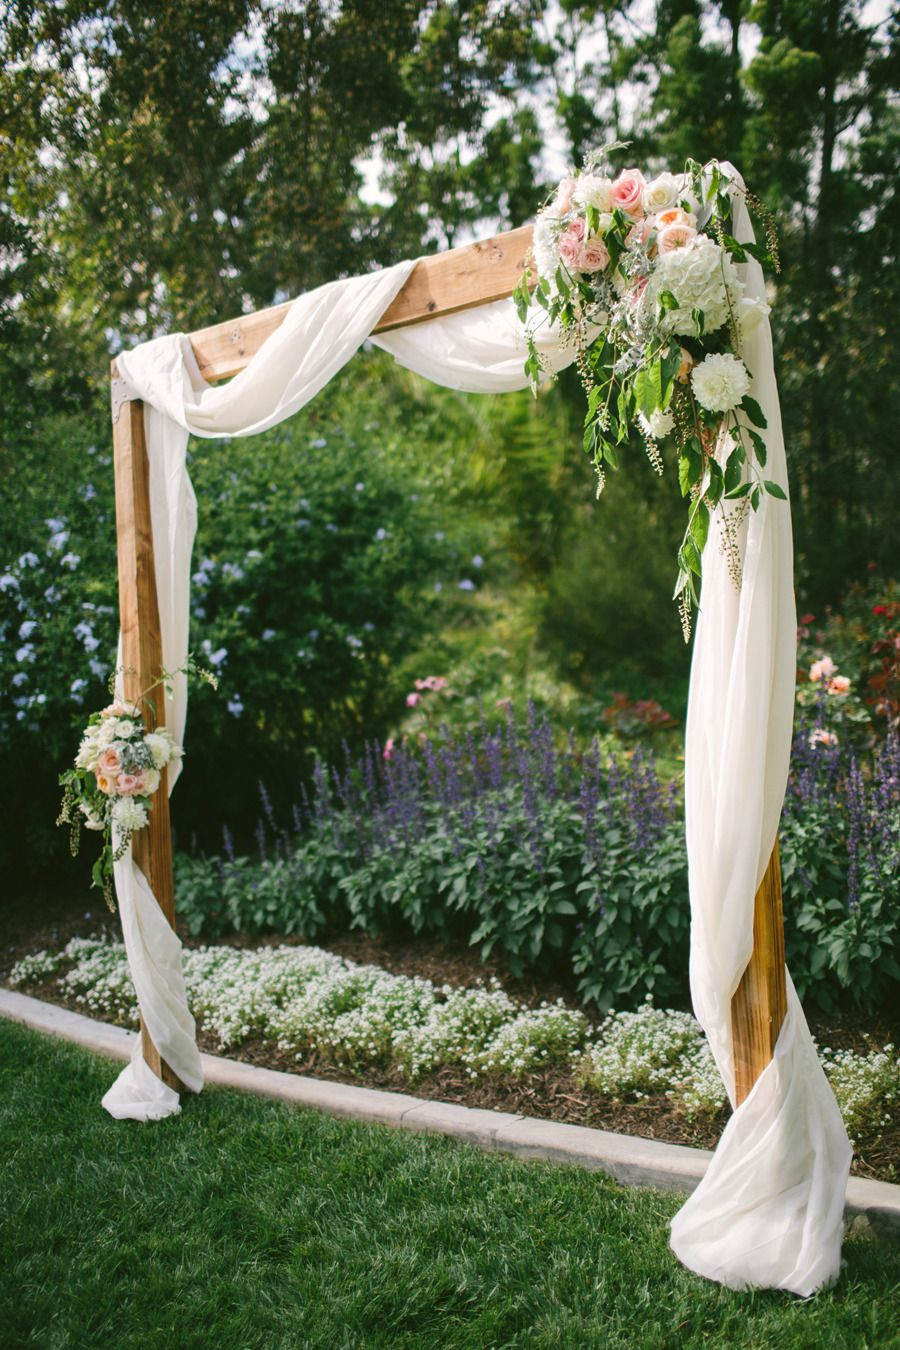 Best ideas about Wedding Trellis DIY . Save or Pin 30 Best Floral Wedding Altars & Arches Decorating Ideas Now.